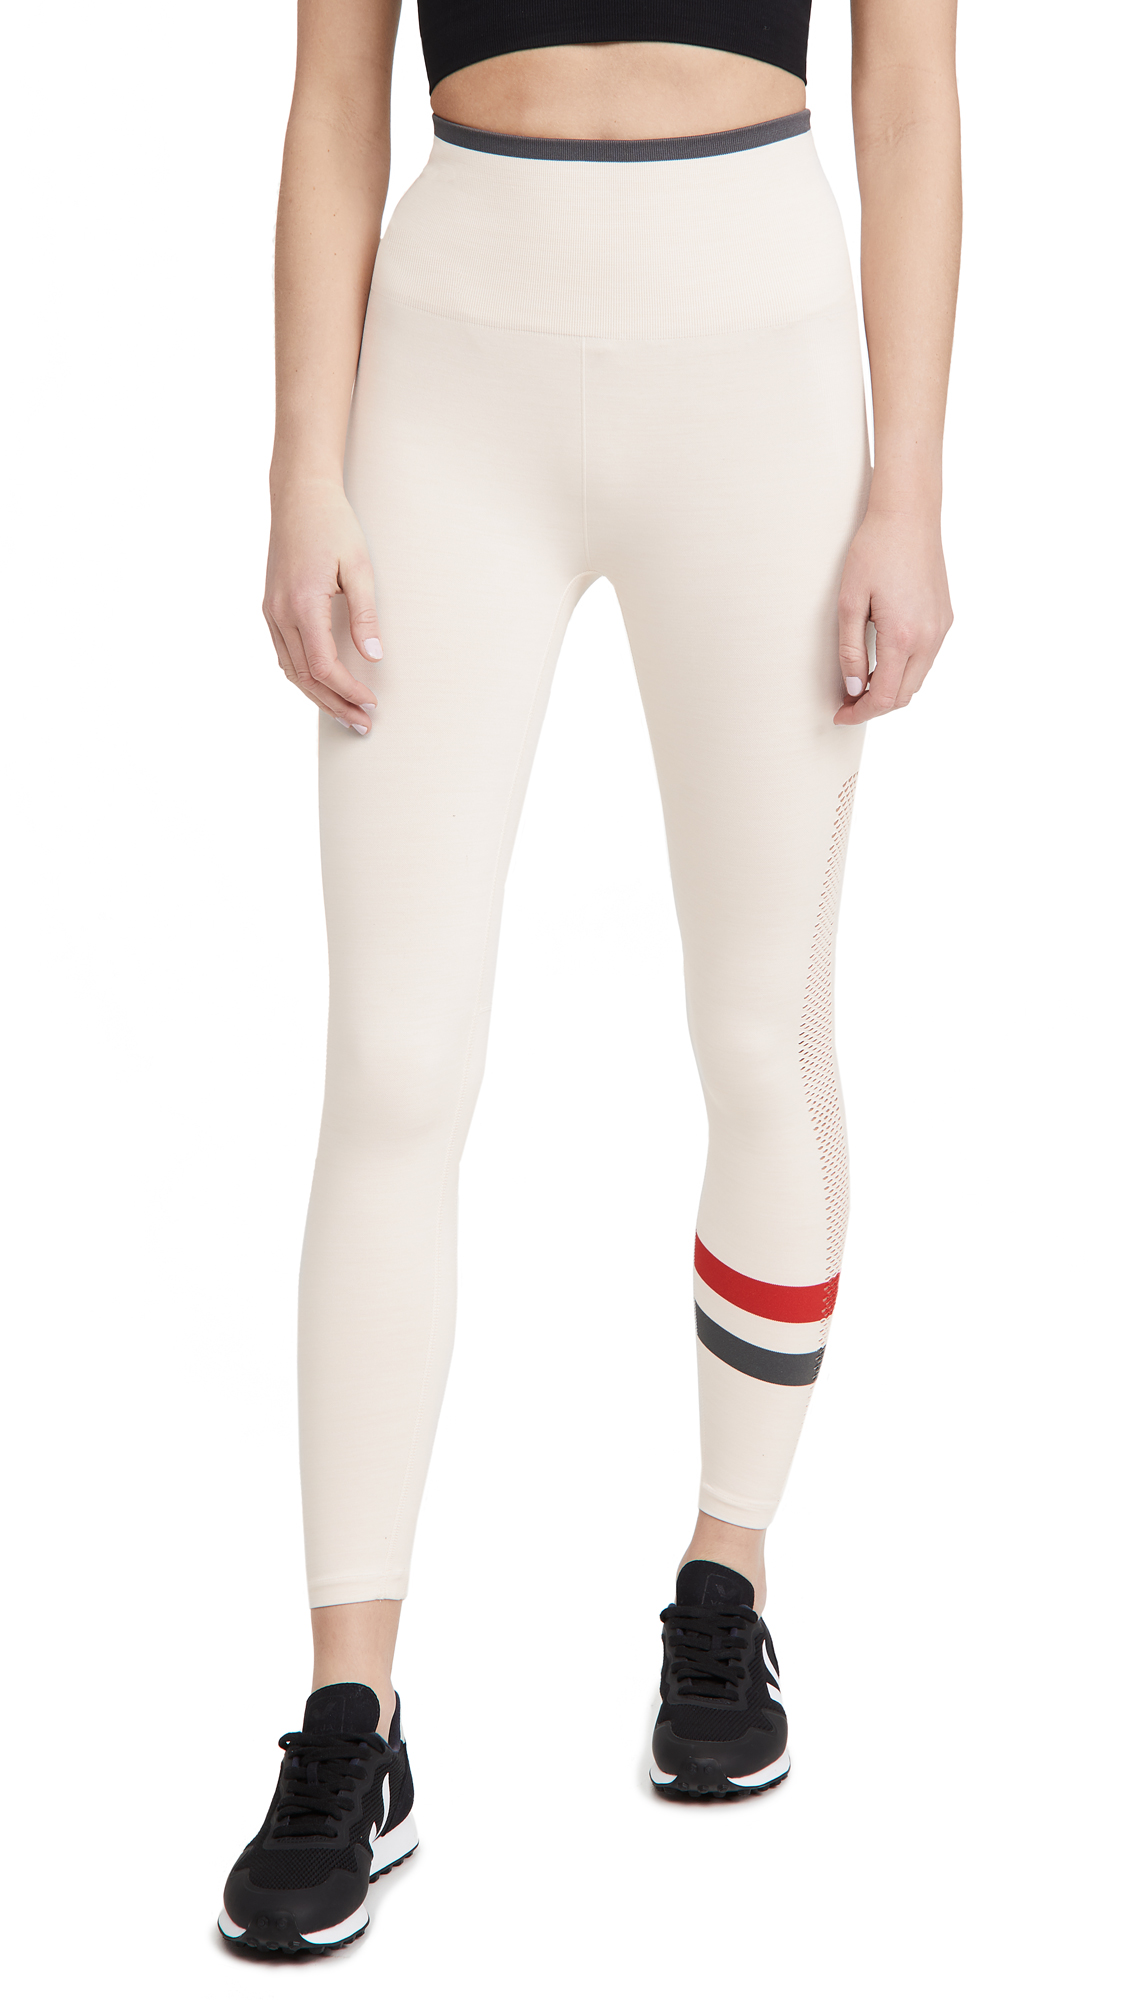 Splits59 Harley High Waist Seamless Leggings